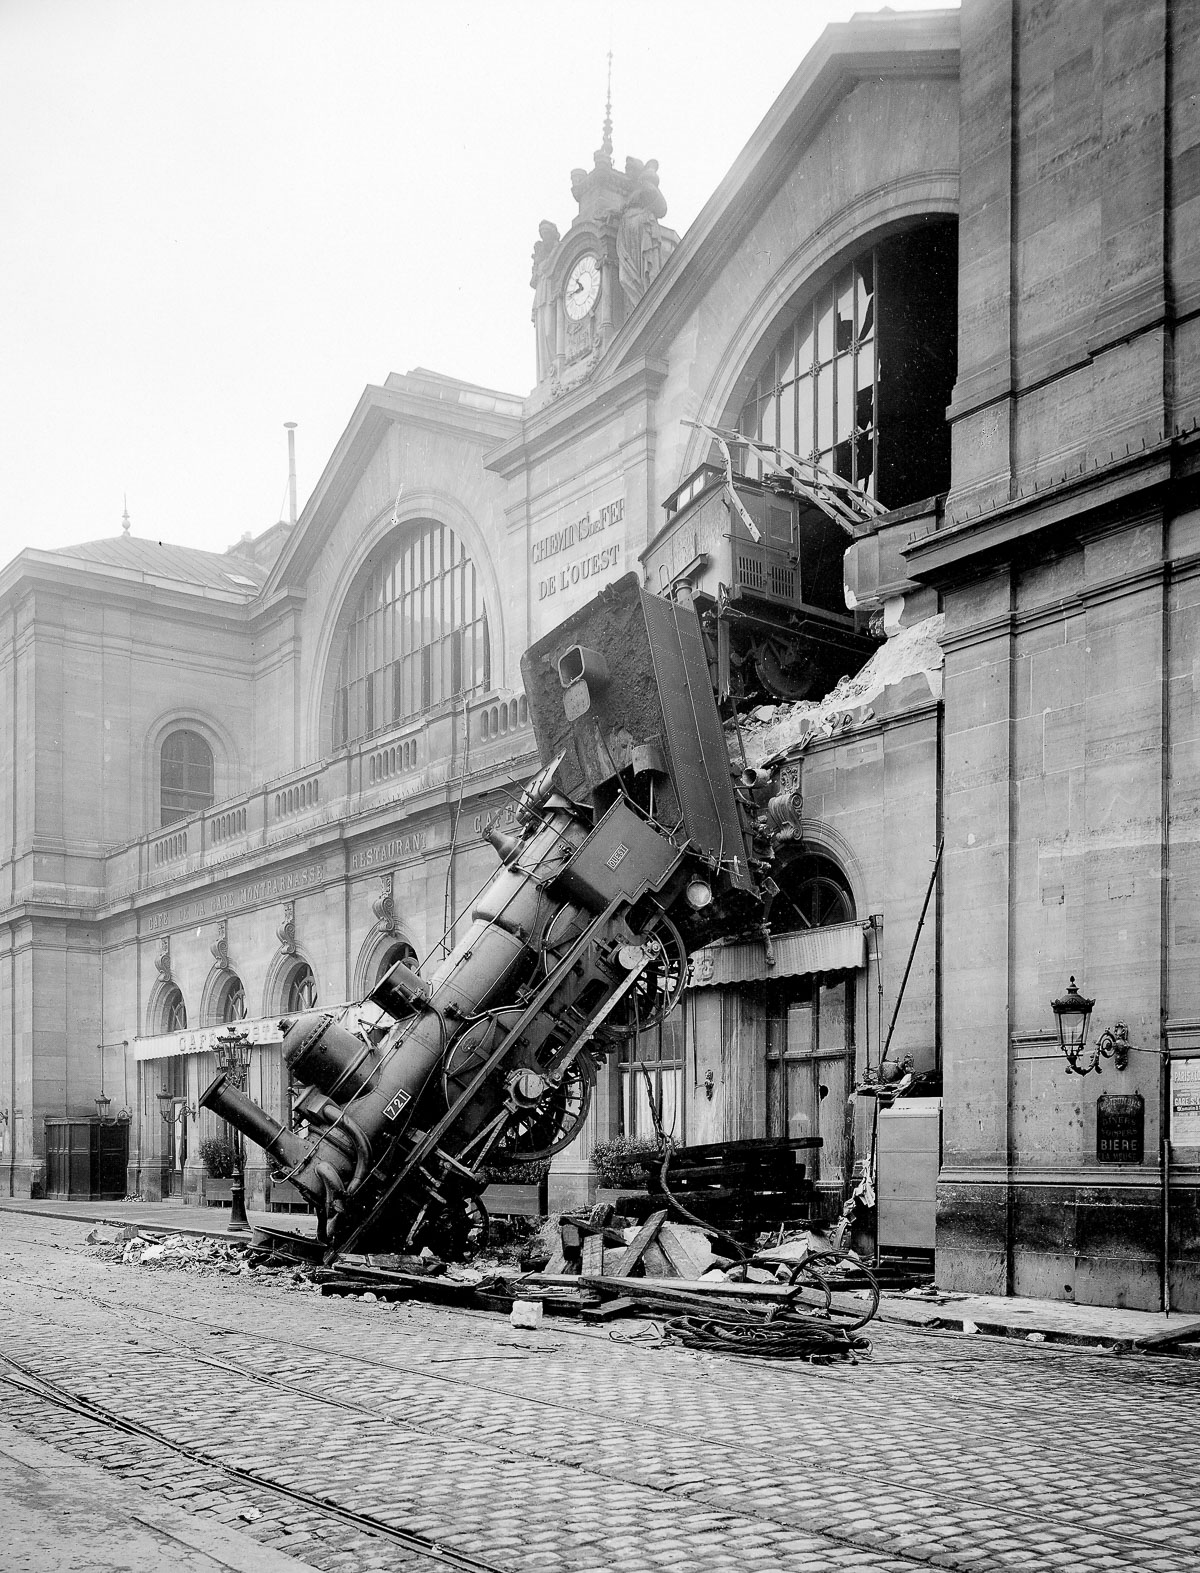 FRANCE - 1895:  The accident of the station Montparnasse. Paris, October 22, 1895. ND-2896A Paris.  (Photo by ND/Roger Viollet/Getty Images)